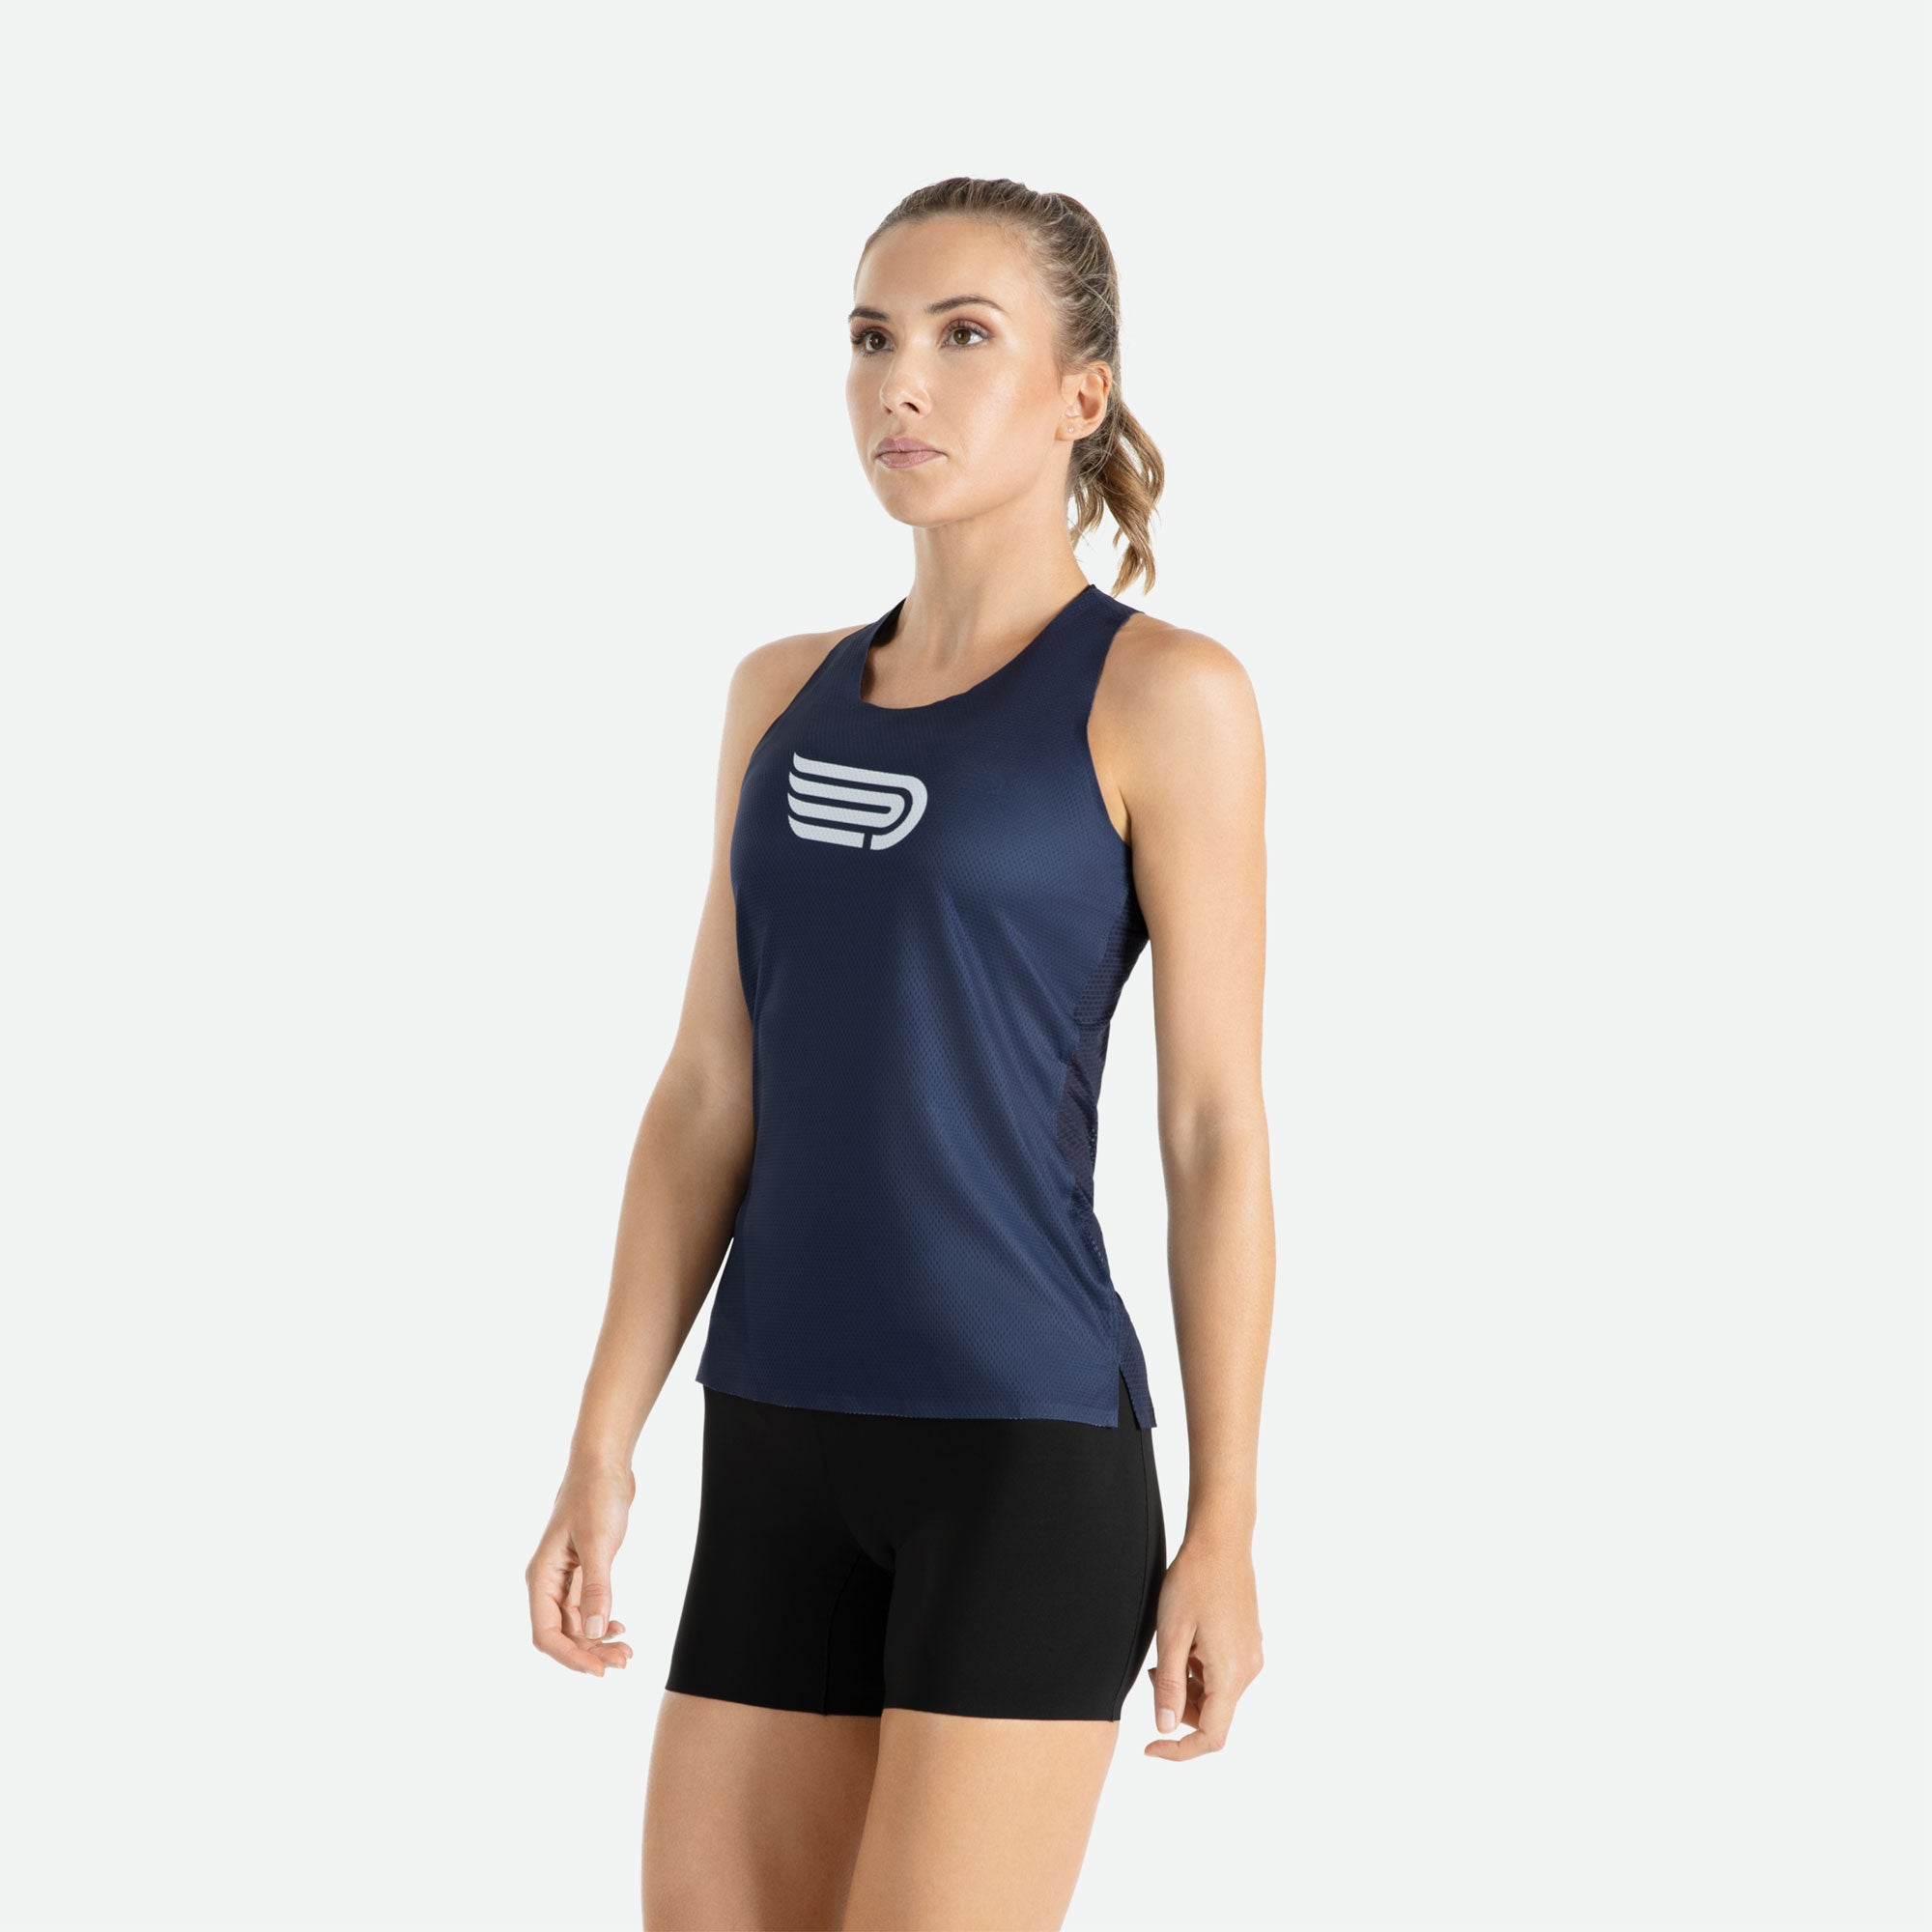 Our Pressio women's Ārahi navy/white singlet features EcoTECH MF fabric which has dual filament recycled polyester yarns from Unifi for superior moisture control to keep you dry.